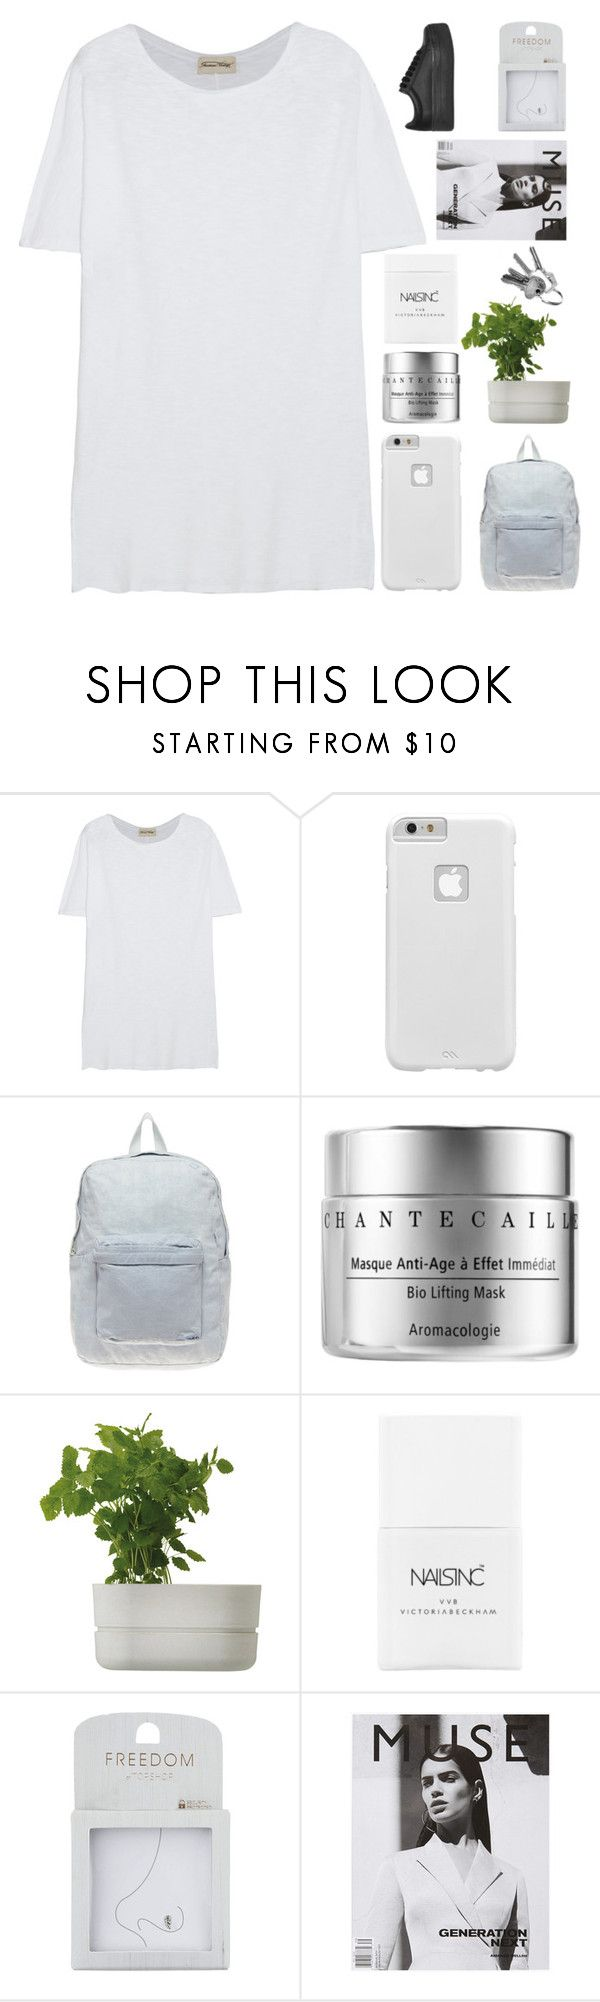 """""""KISS LIKE IT'S A LIE"""" by constellation-s ❤ liked on Polyvore featuring American Vintage, Case-Mate, American Apparel, Chantecaille, Rig-Tig by Stelton, Nails Inc., Topshop and Jeffrey Campbell"""